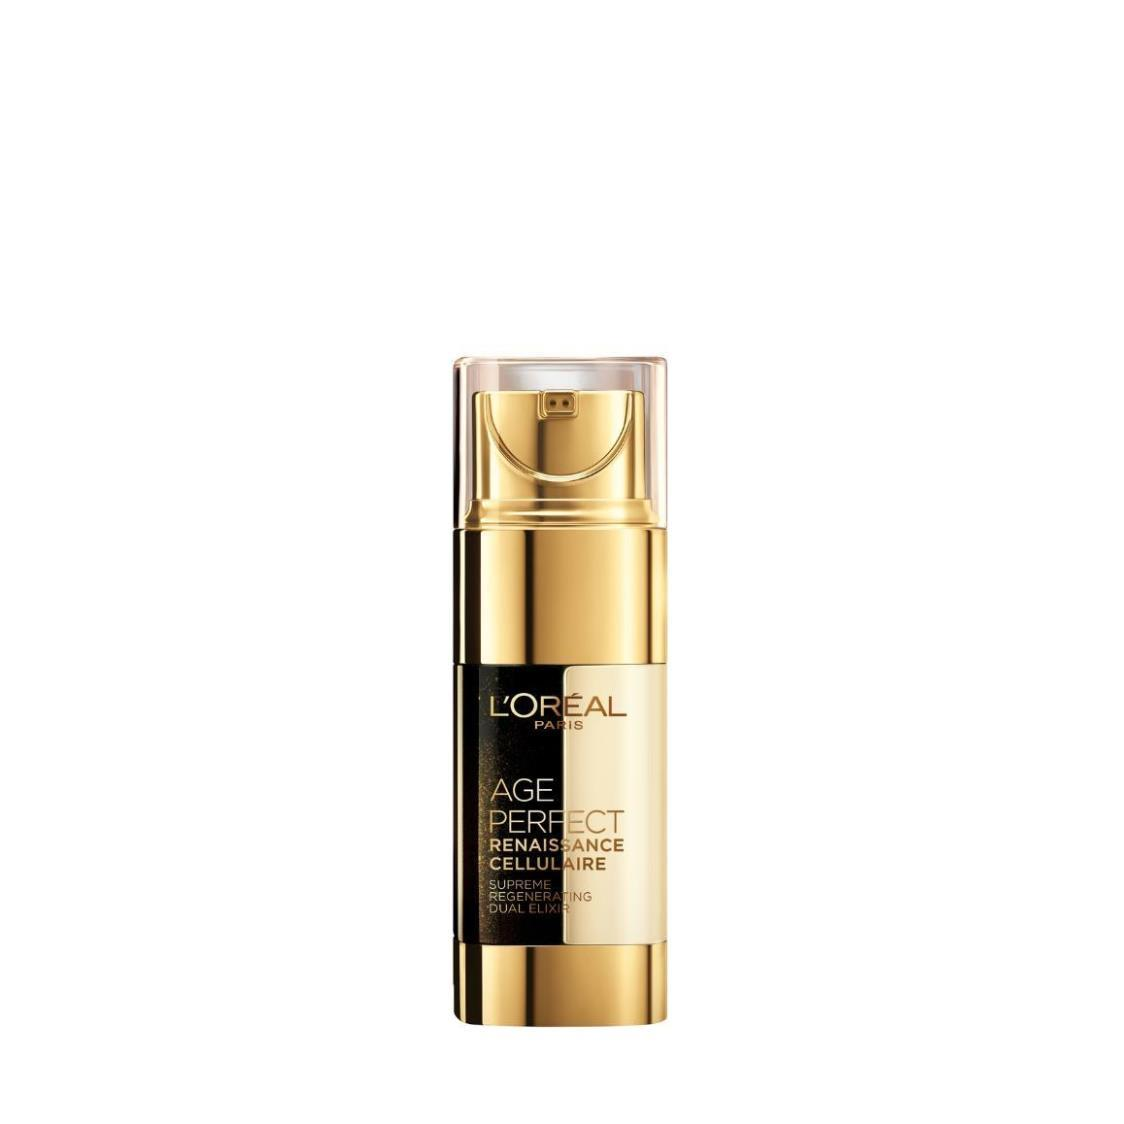 Age Perfect Renaissance Cellulaire Double Serum 50ml